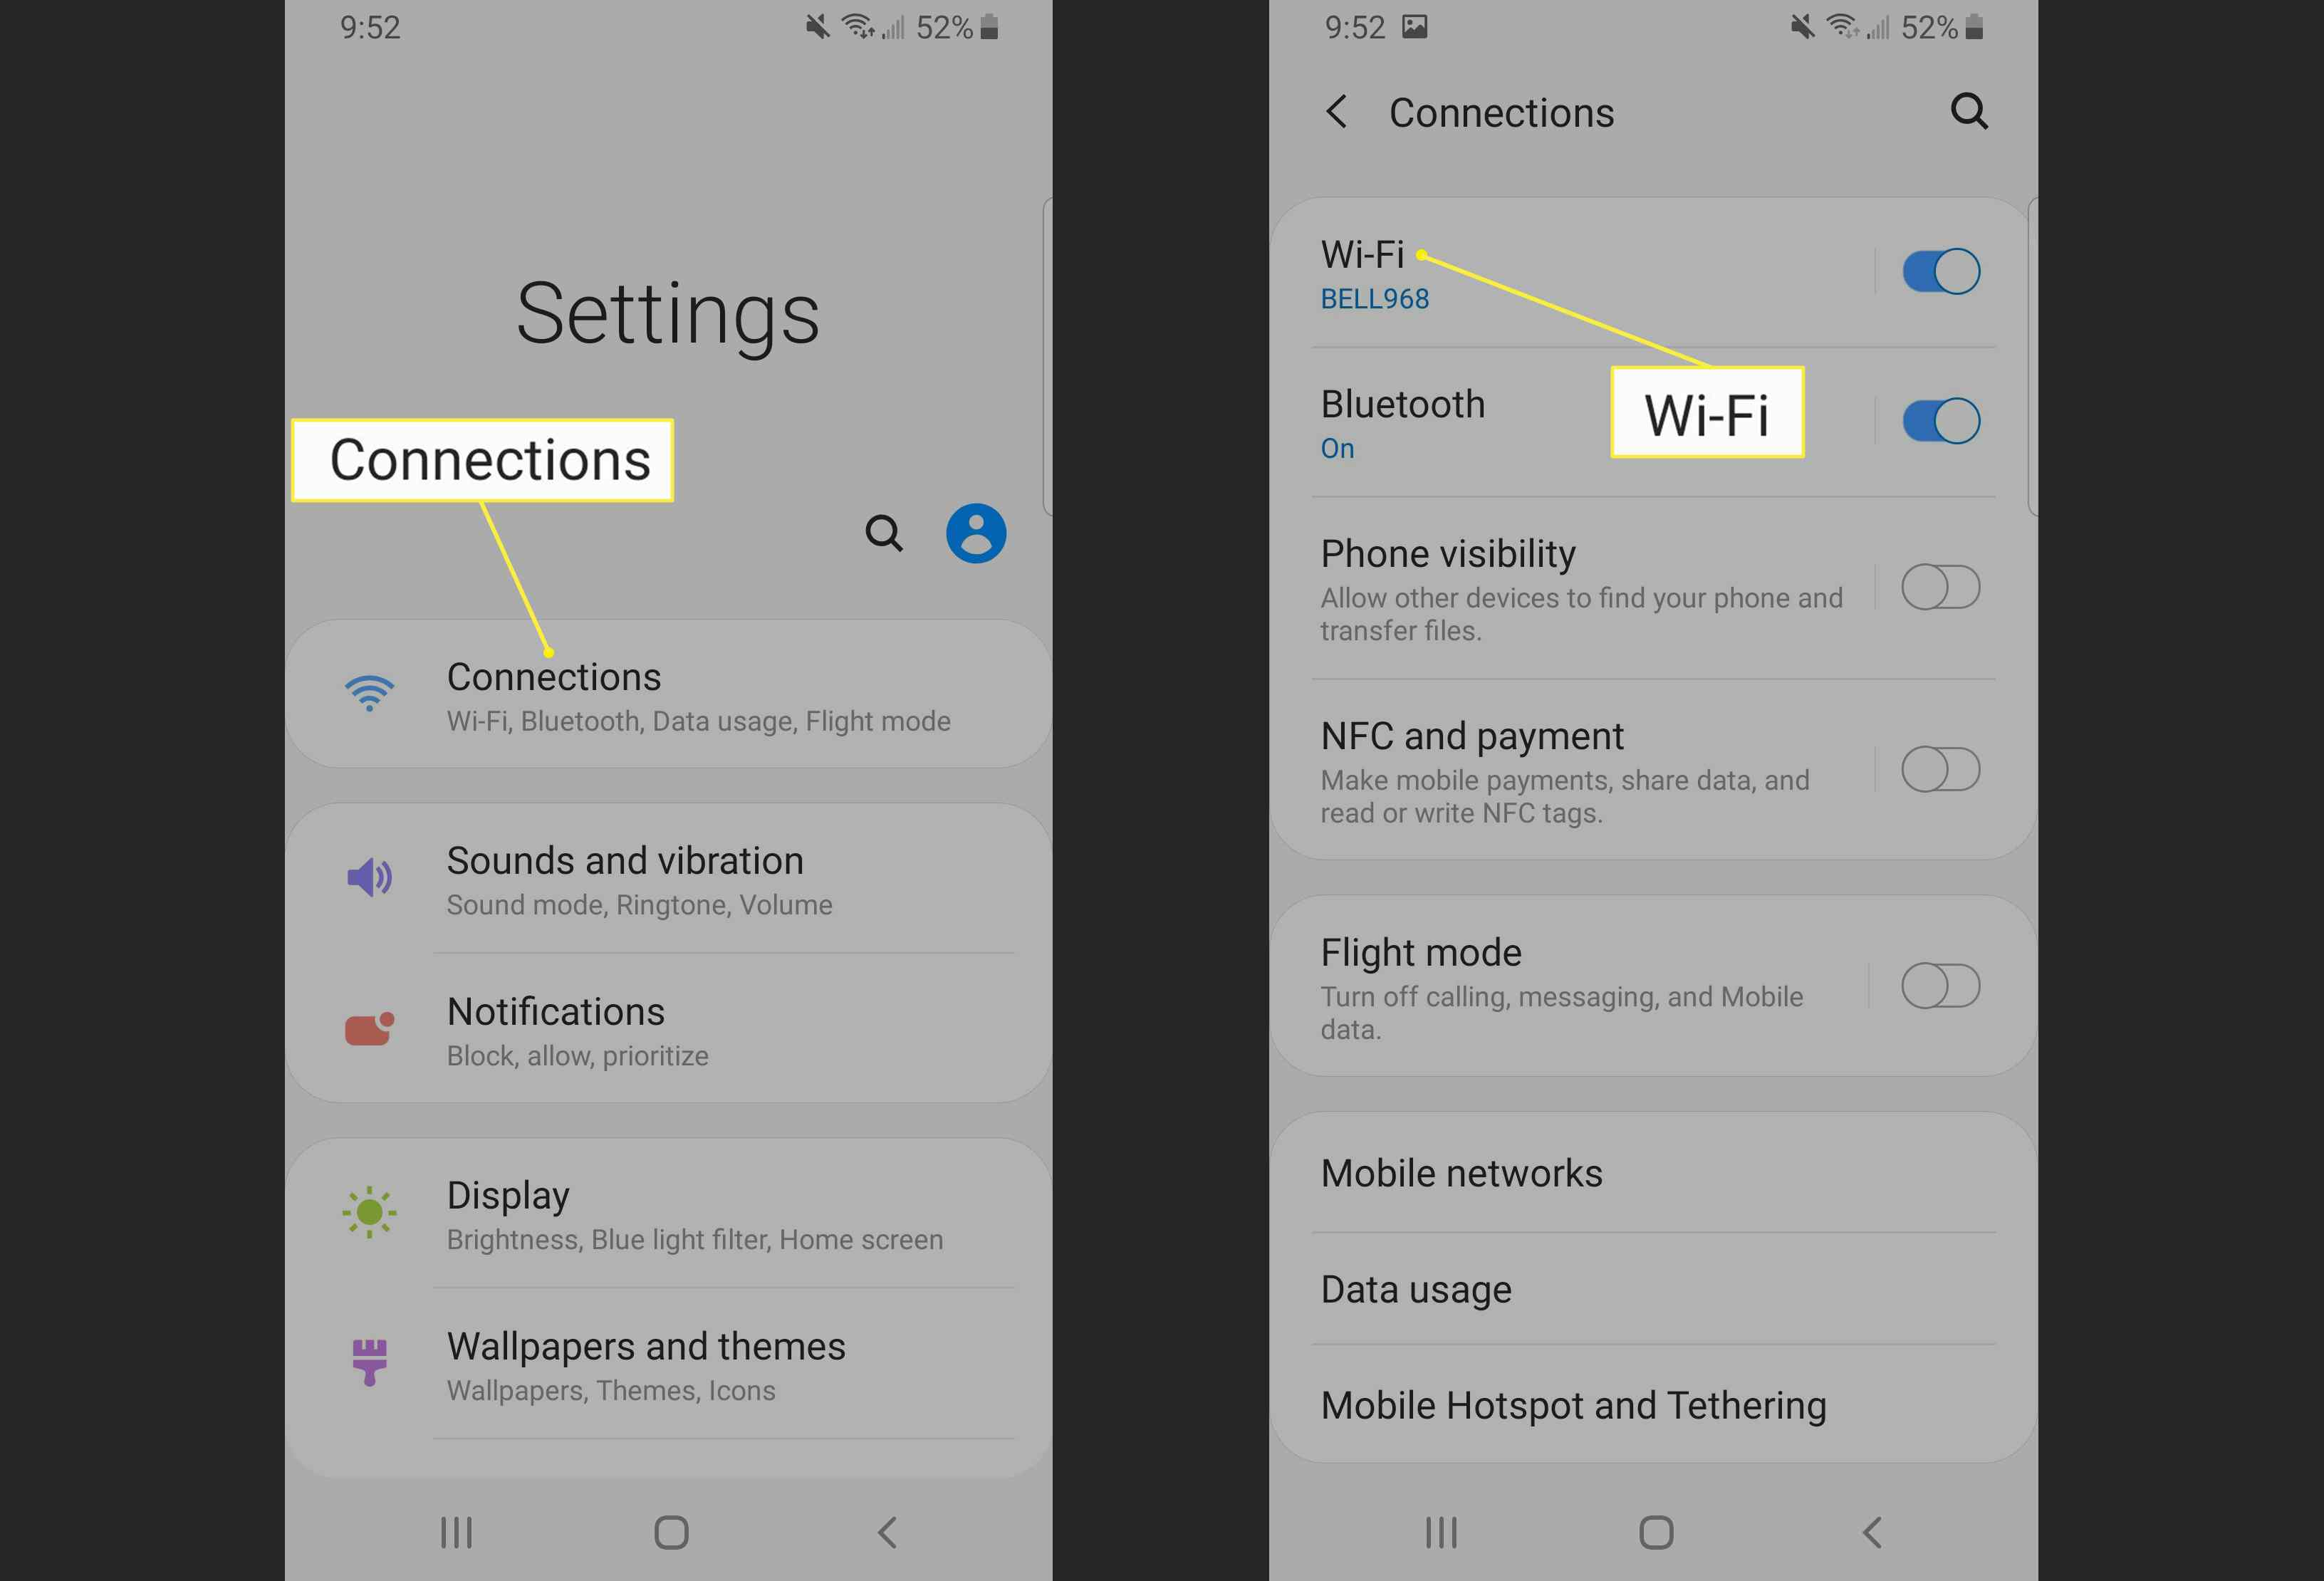 Connections menu on a Galaxy S8 with Wi-Fi highlighted.